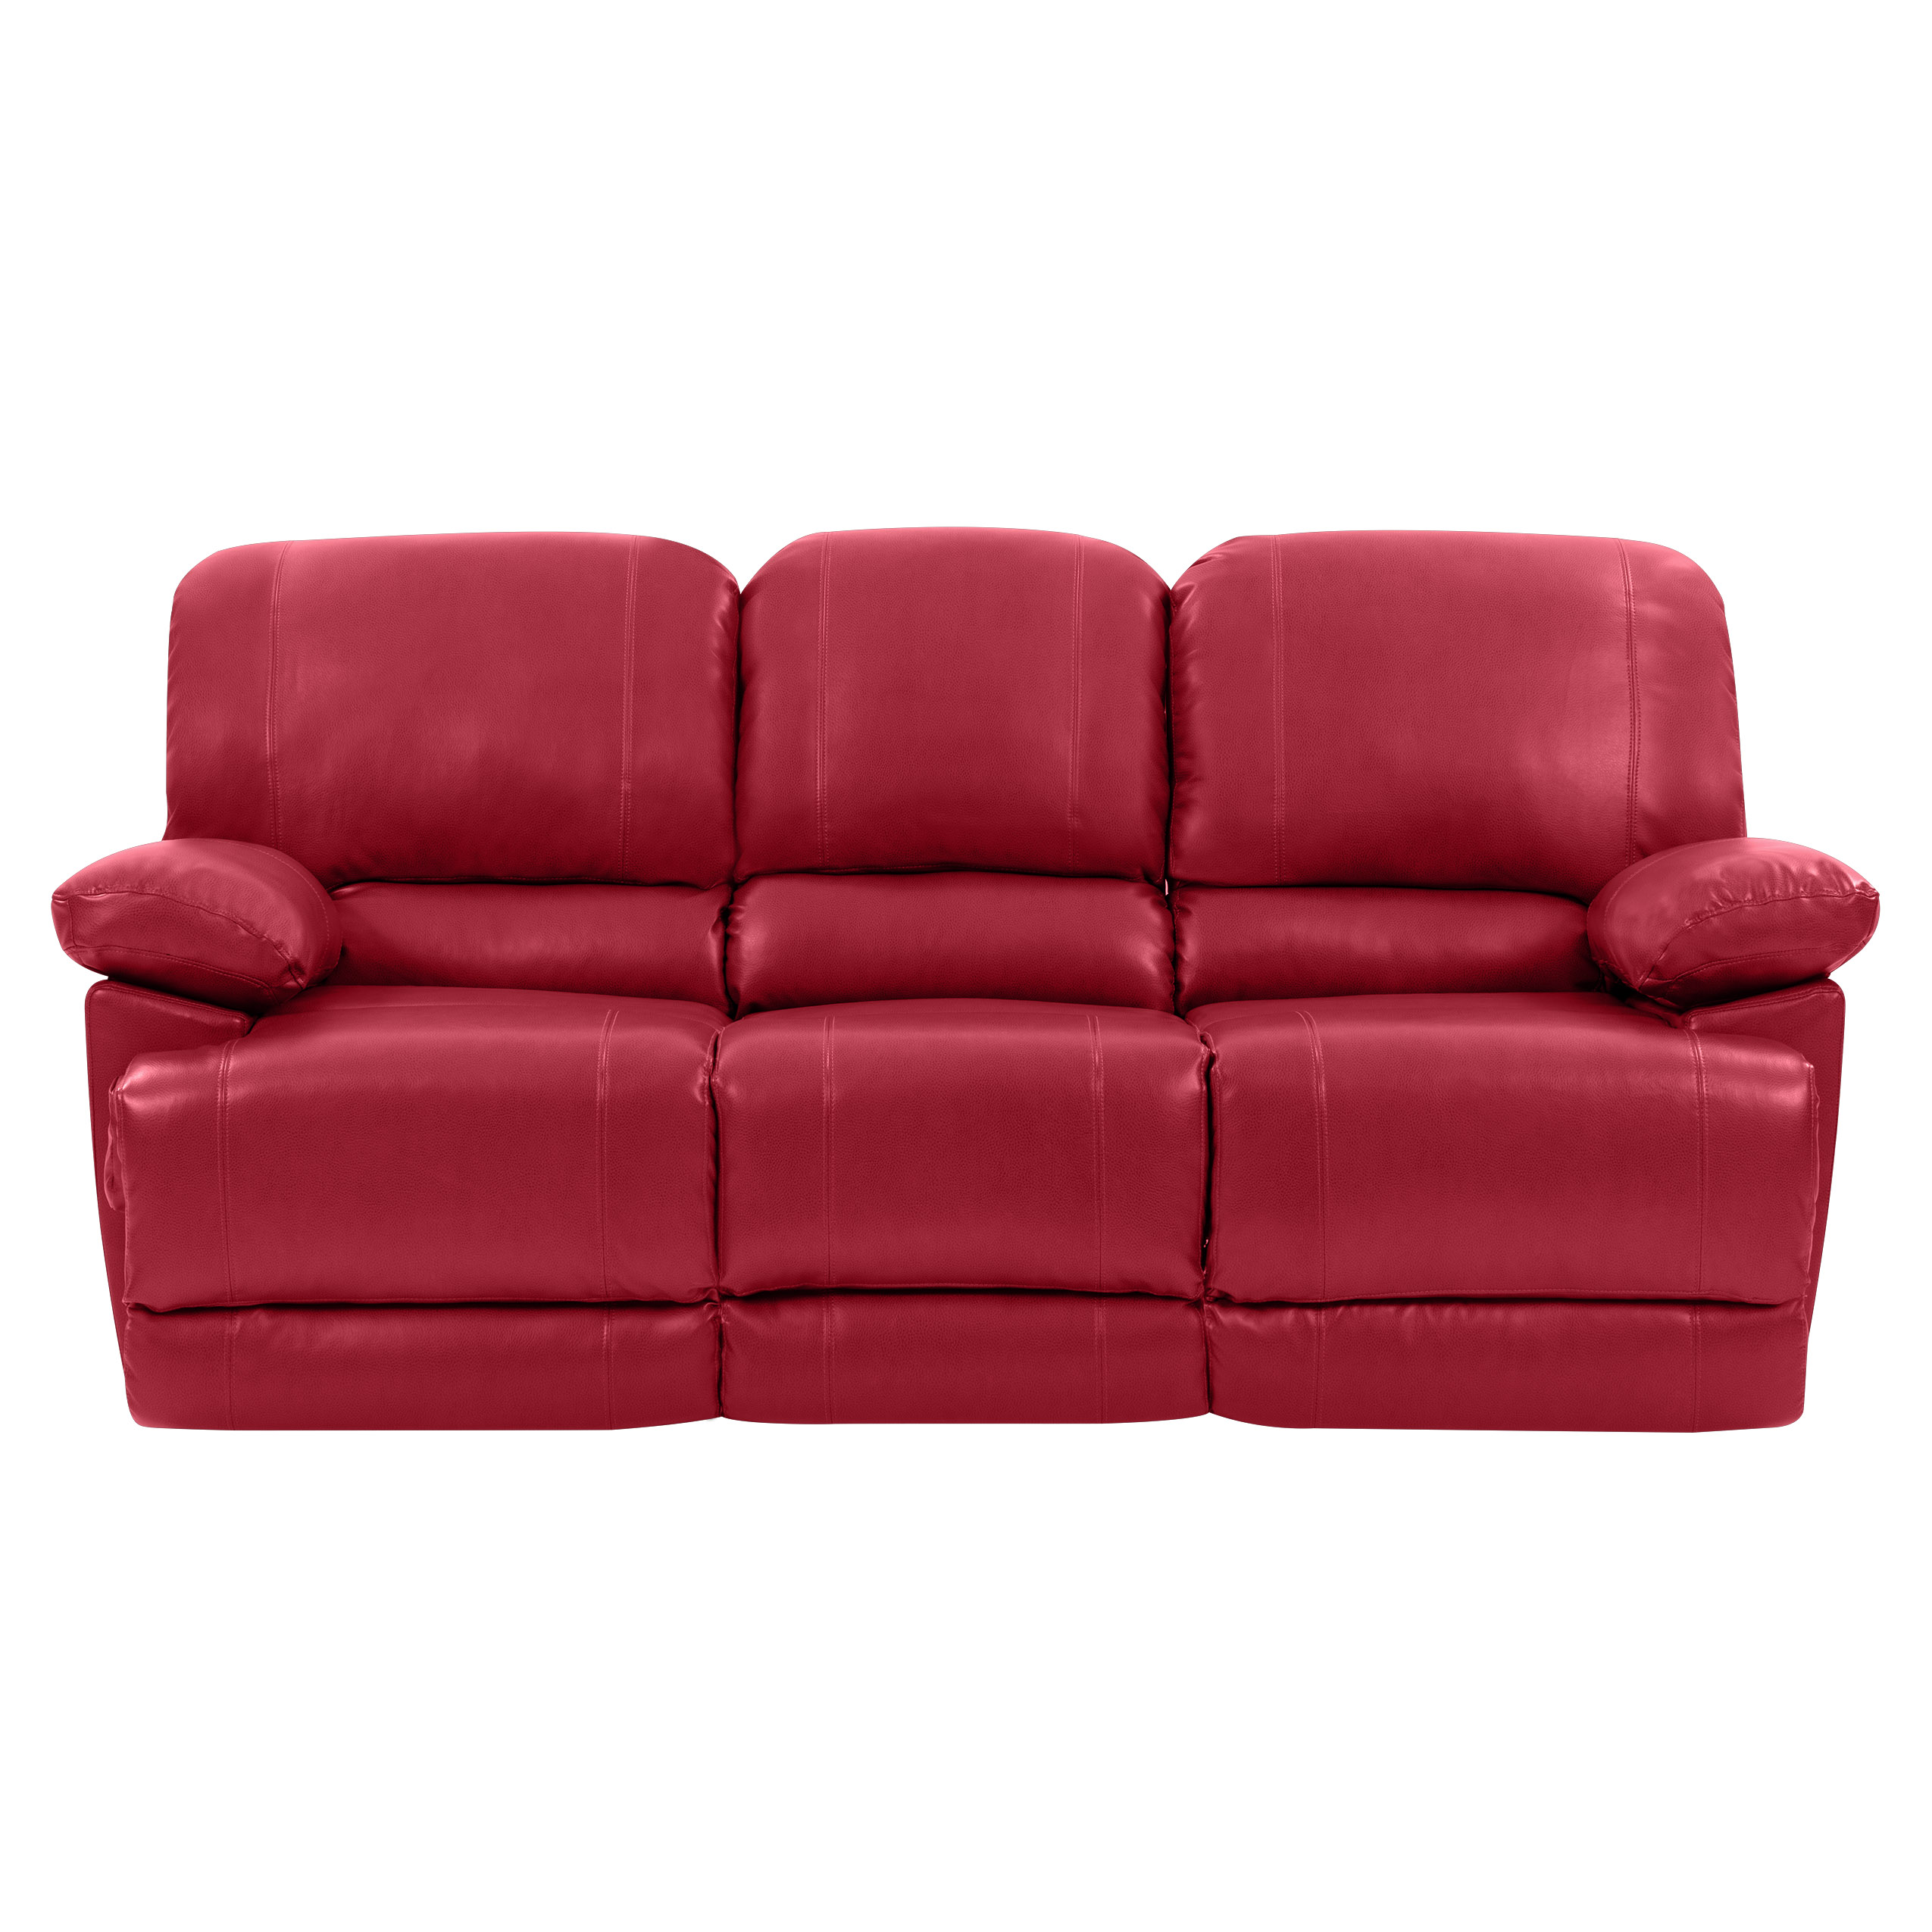 Corliving Lzy 352 S Plush Power Reclining Red Bonded